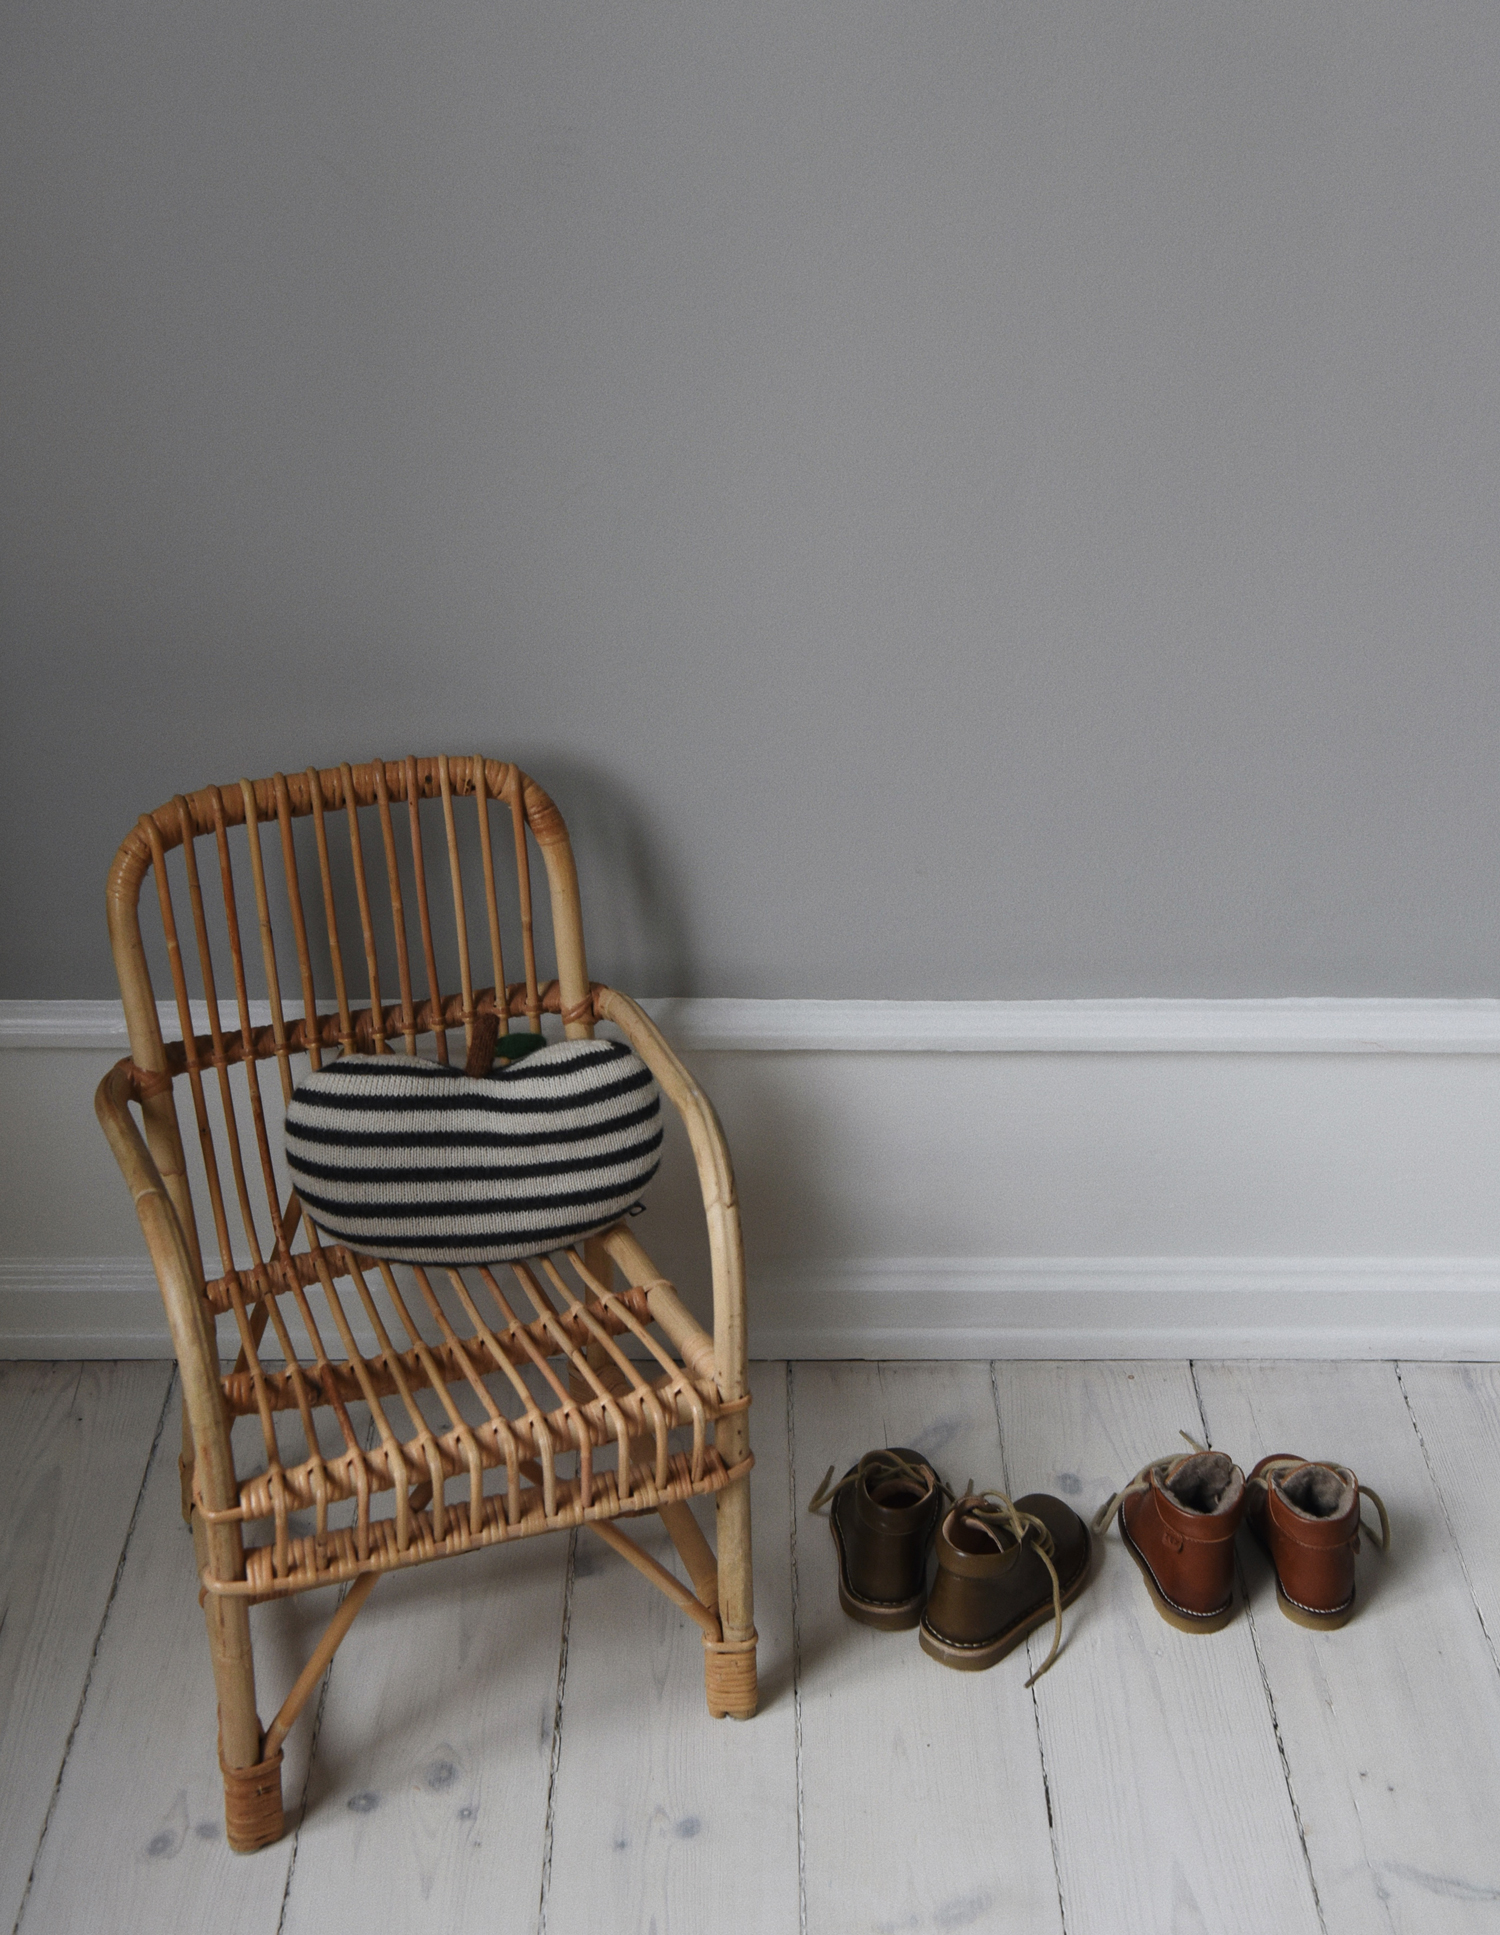 The striped  Apple Pillow  from Oeuf NYC and some of Walter and Holger's shoes.